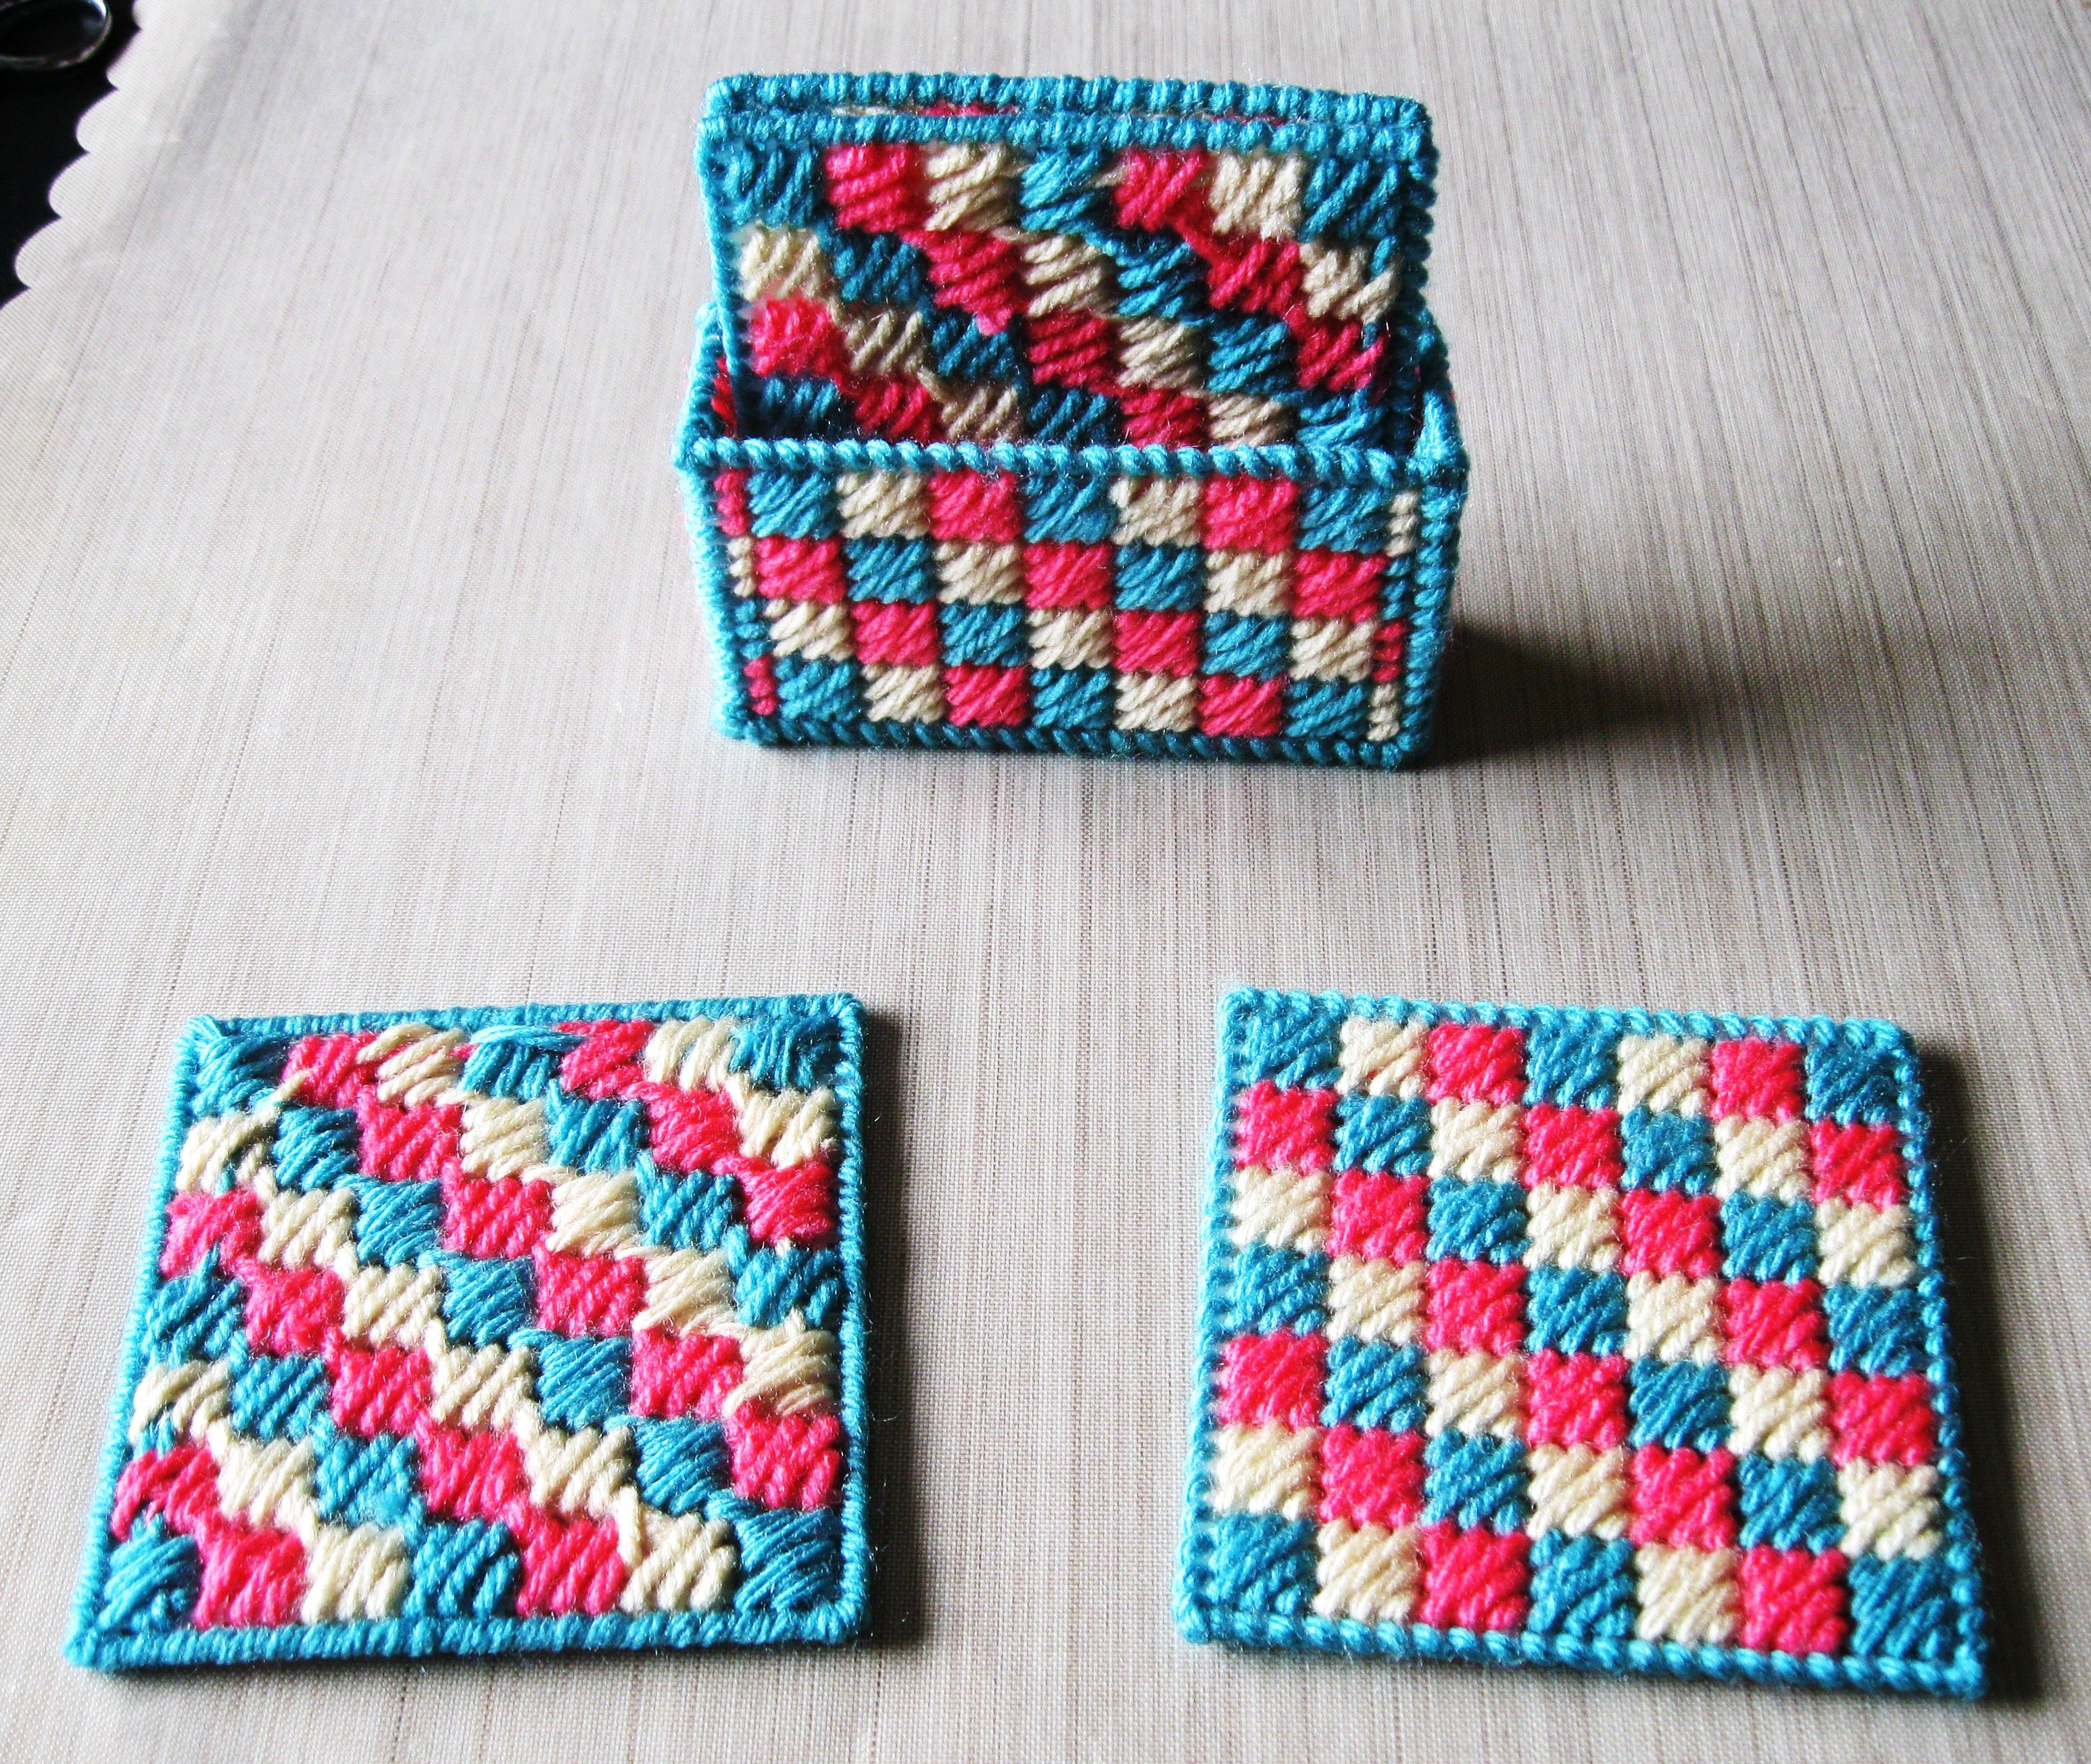 Patchwork Coasters & Holder Set